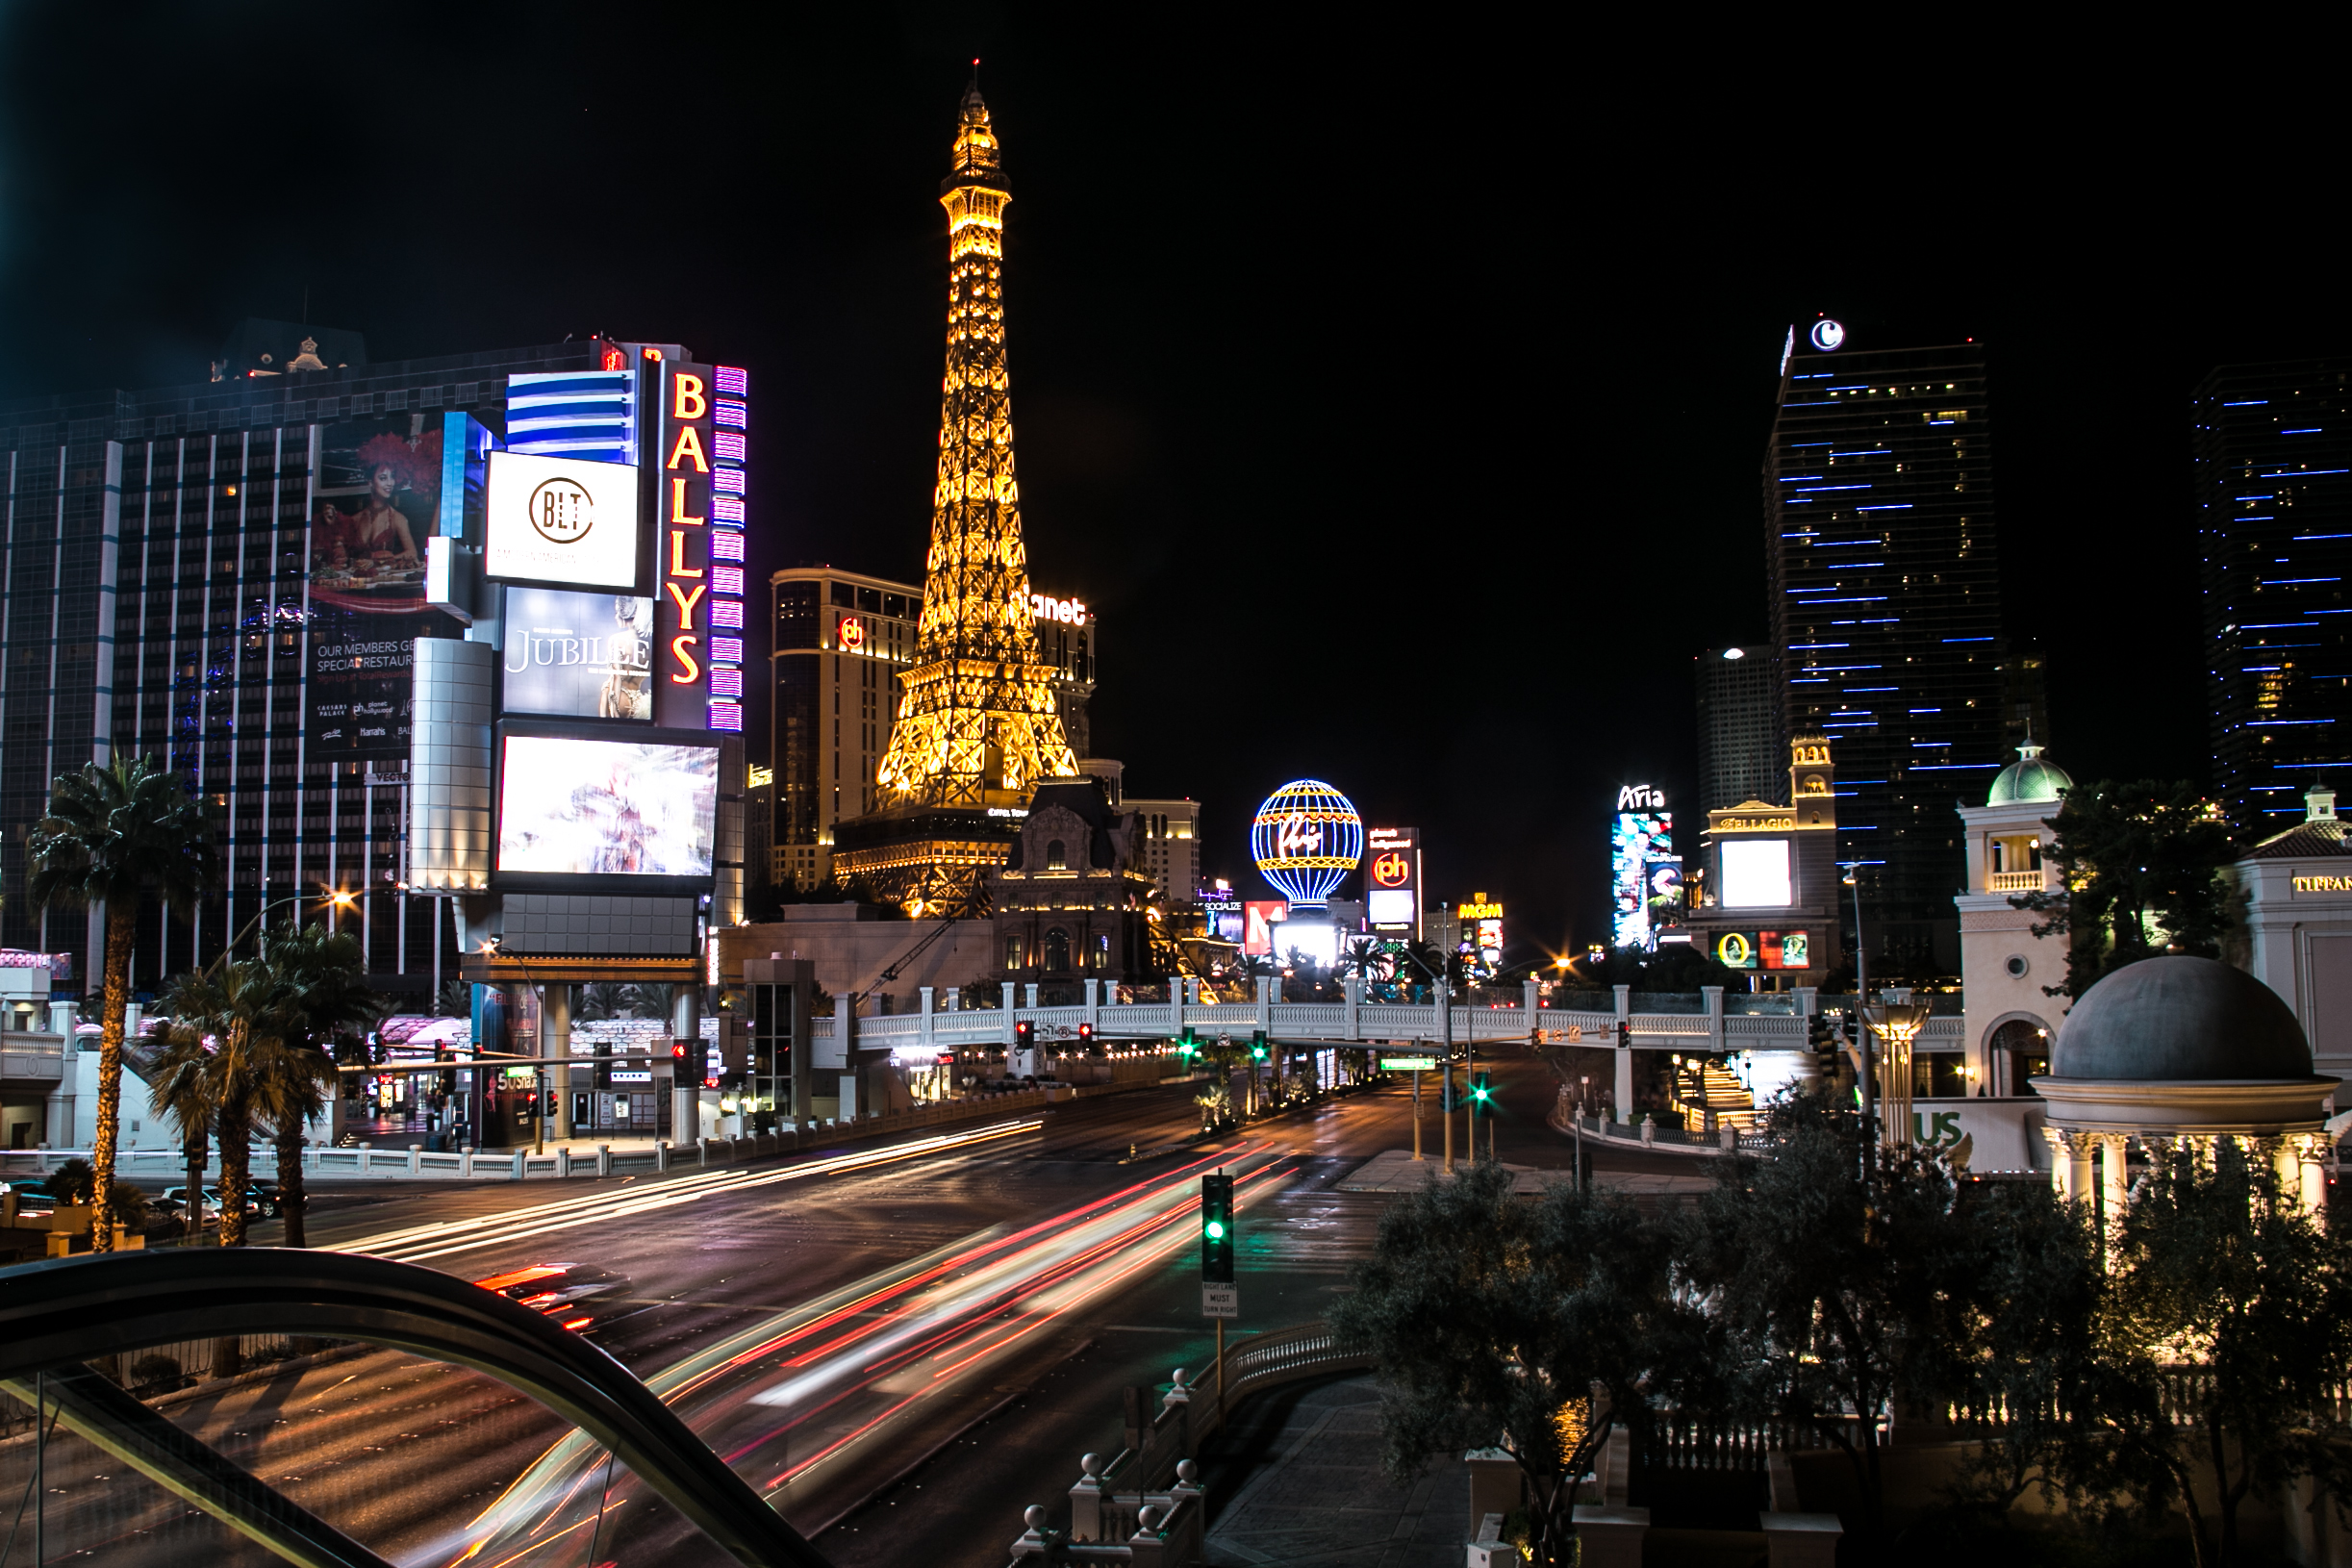 Las Vegas, Nevada - United States